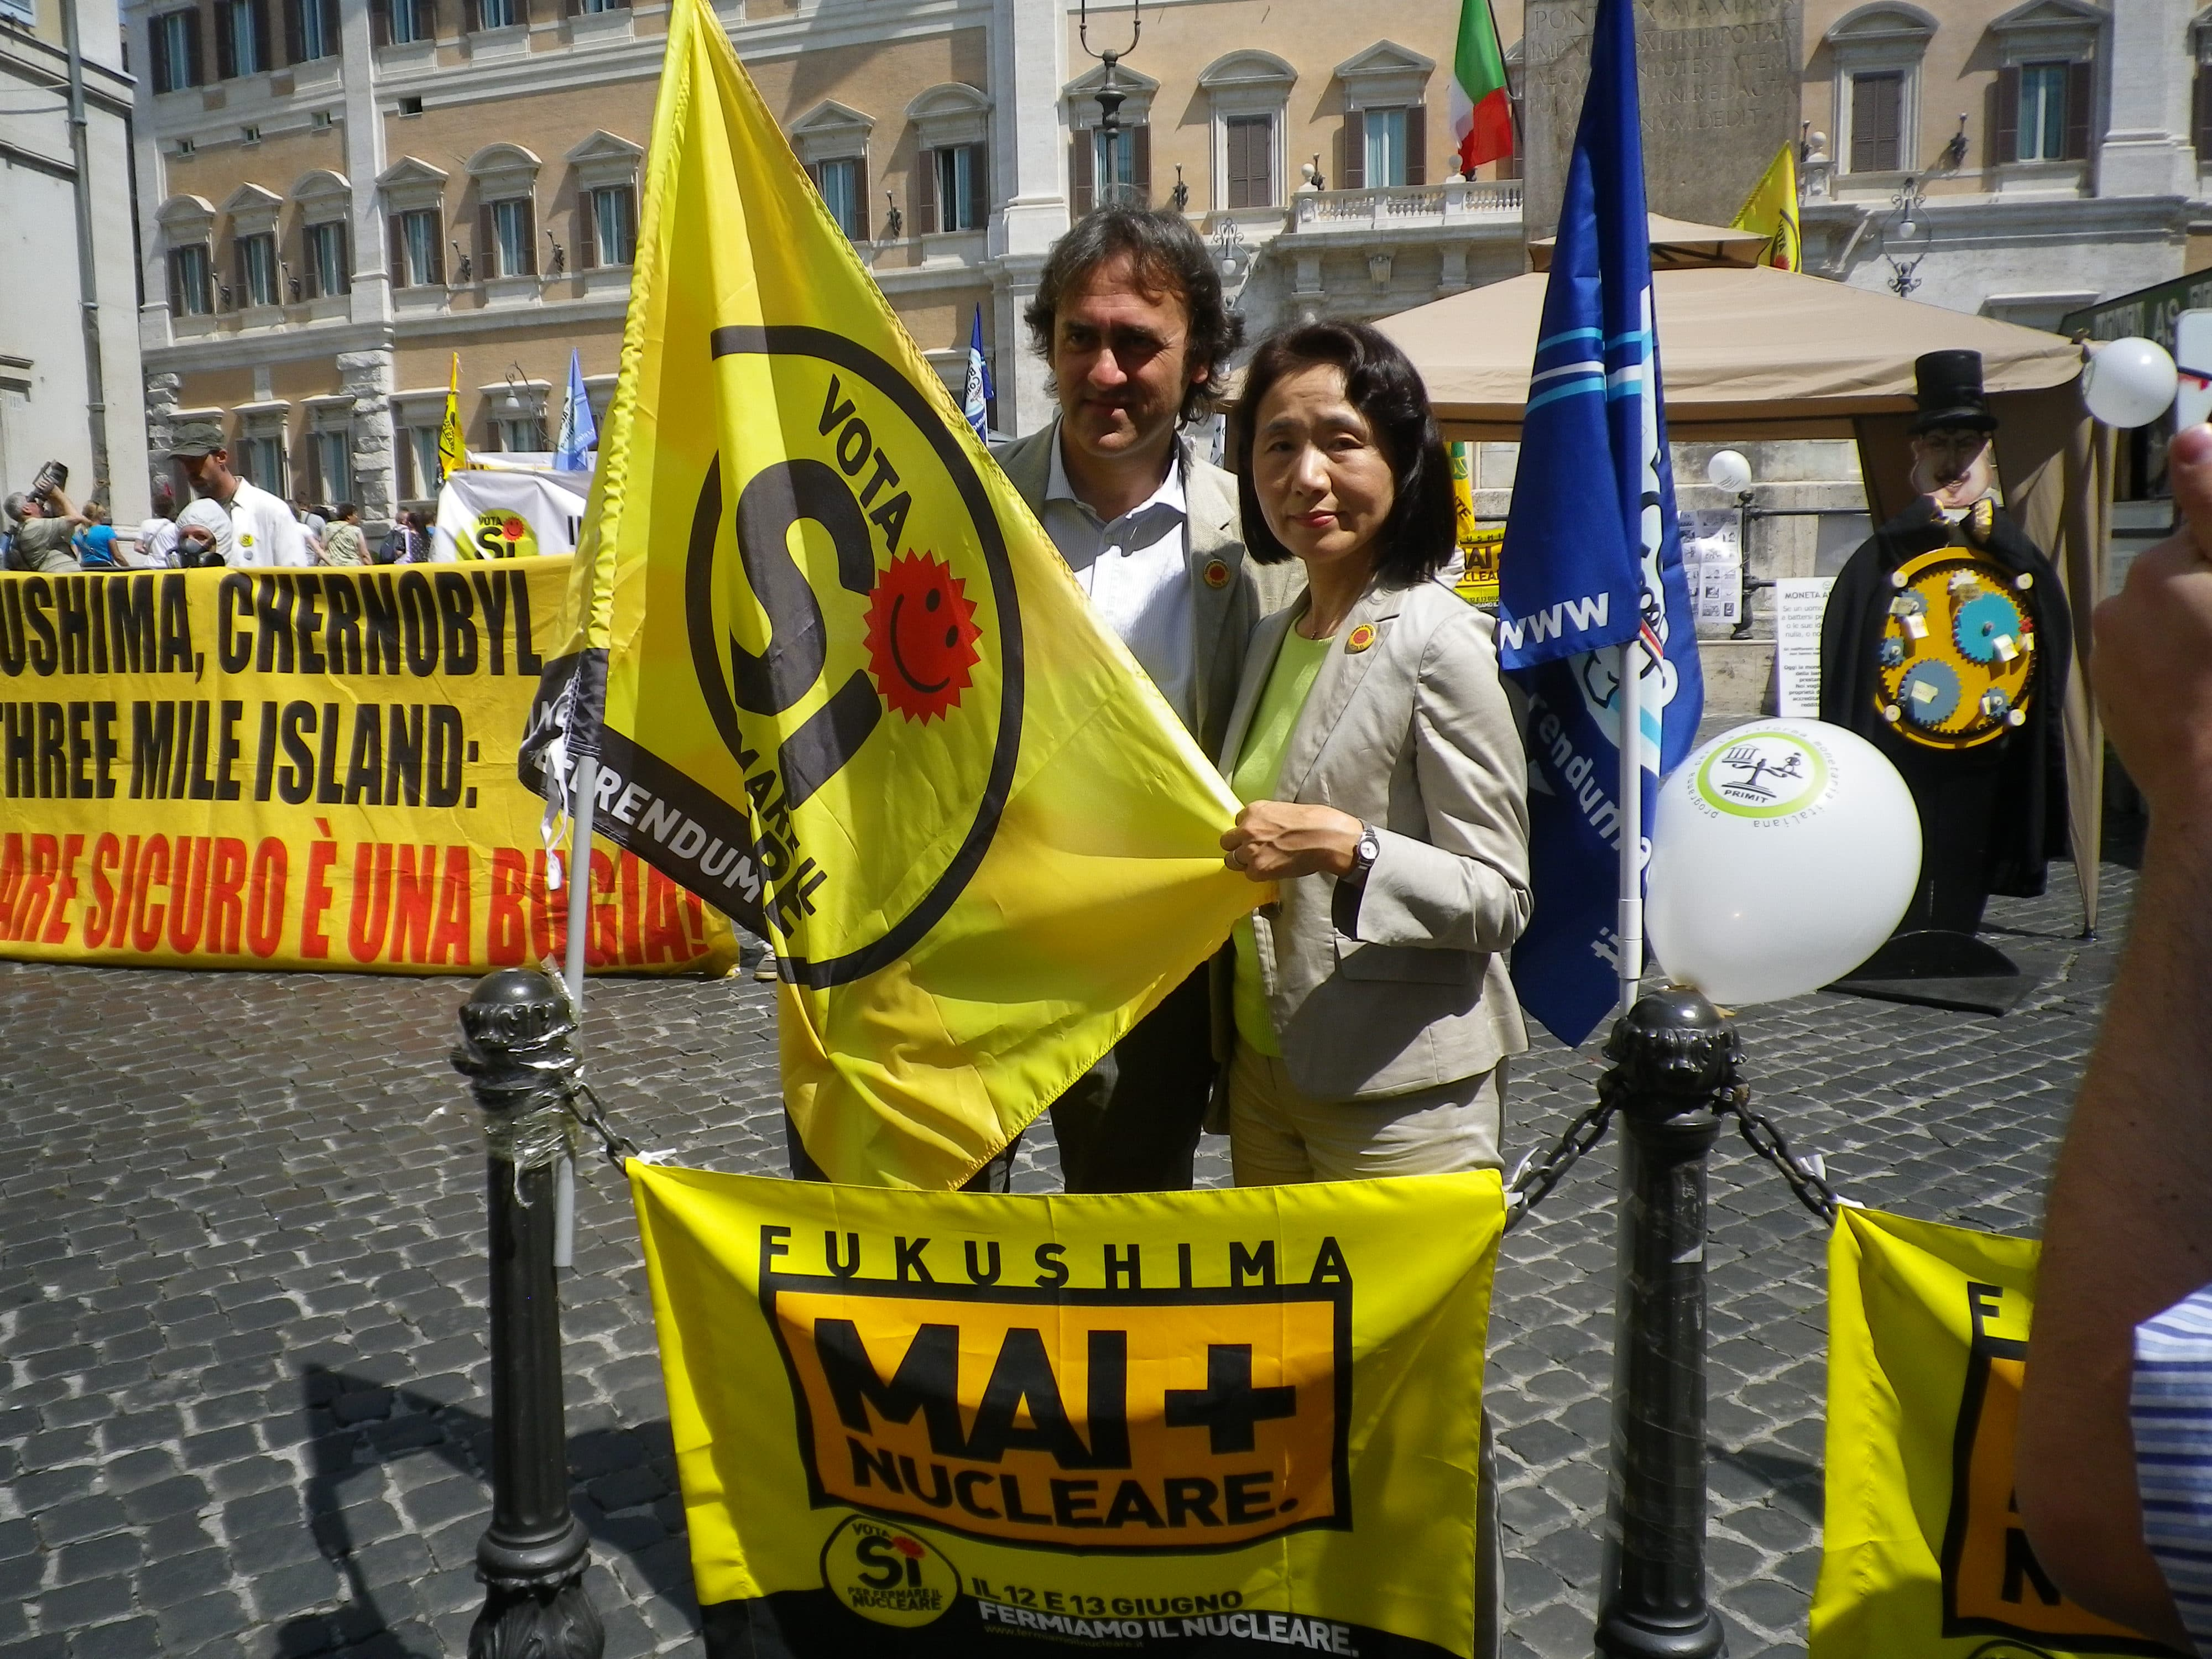 Satoko Watanabe invited by the Greens in Italy. She reported on Fukushima before the referendum on nuclear energy policy.